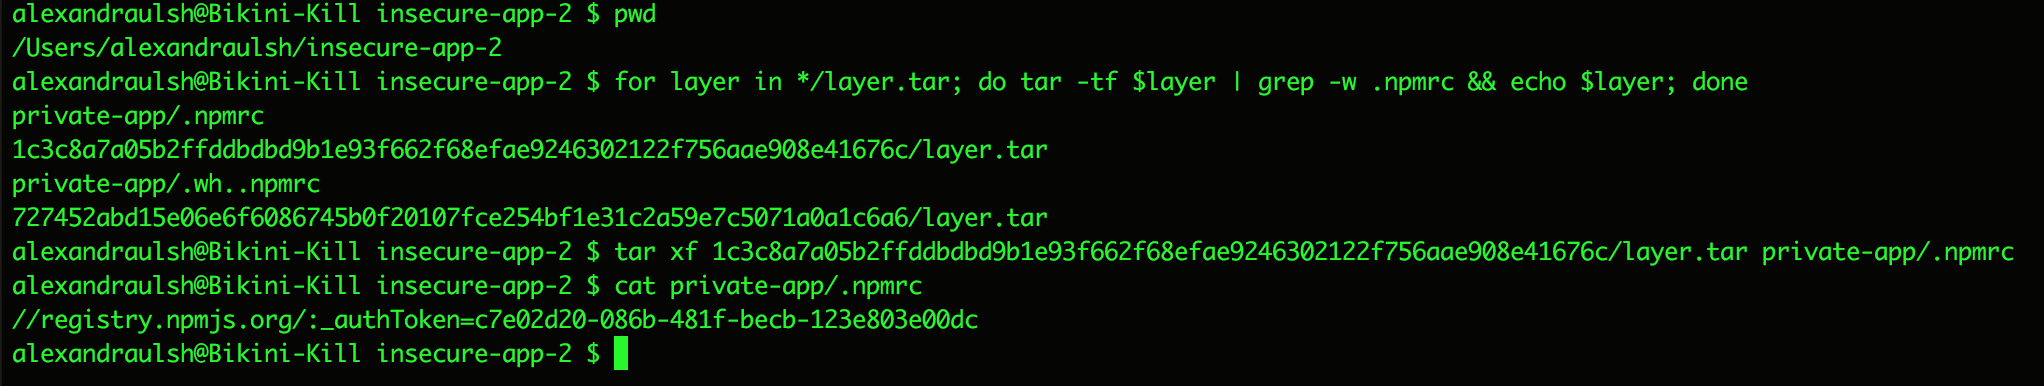 Stealing .npmrc files from Docker layers